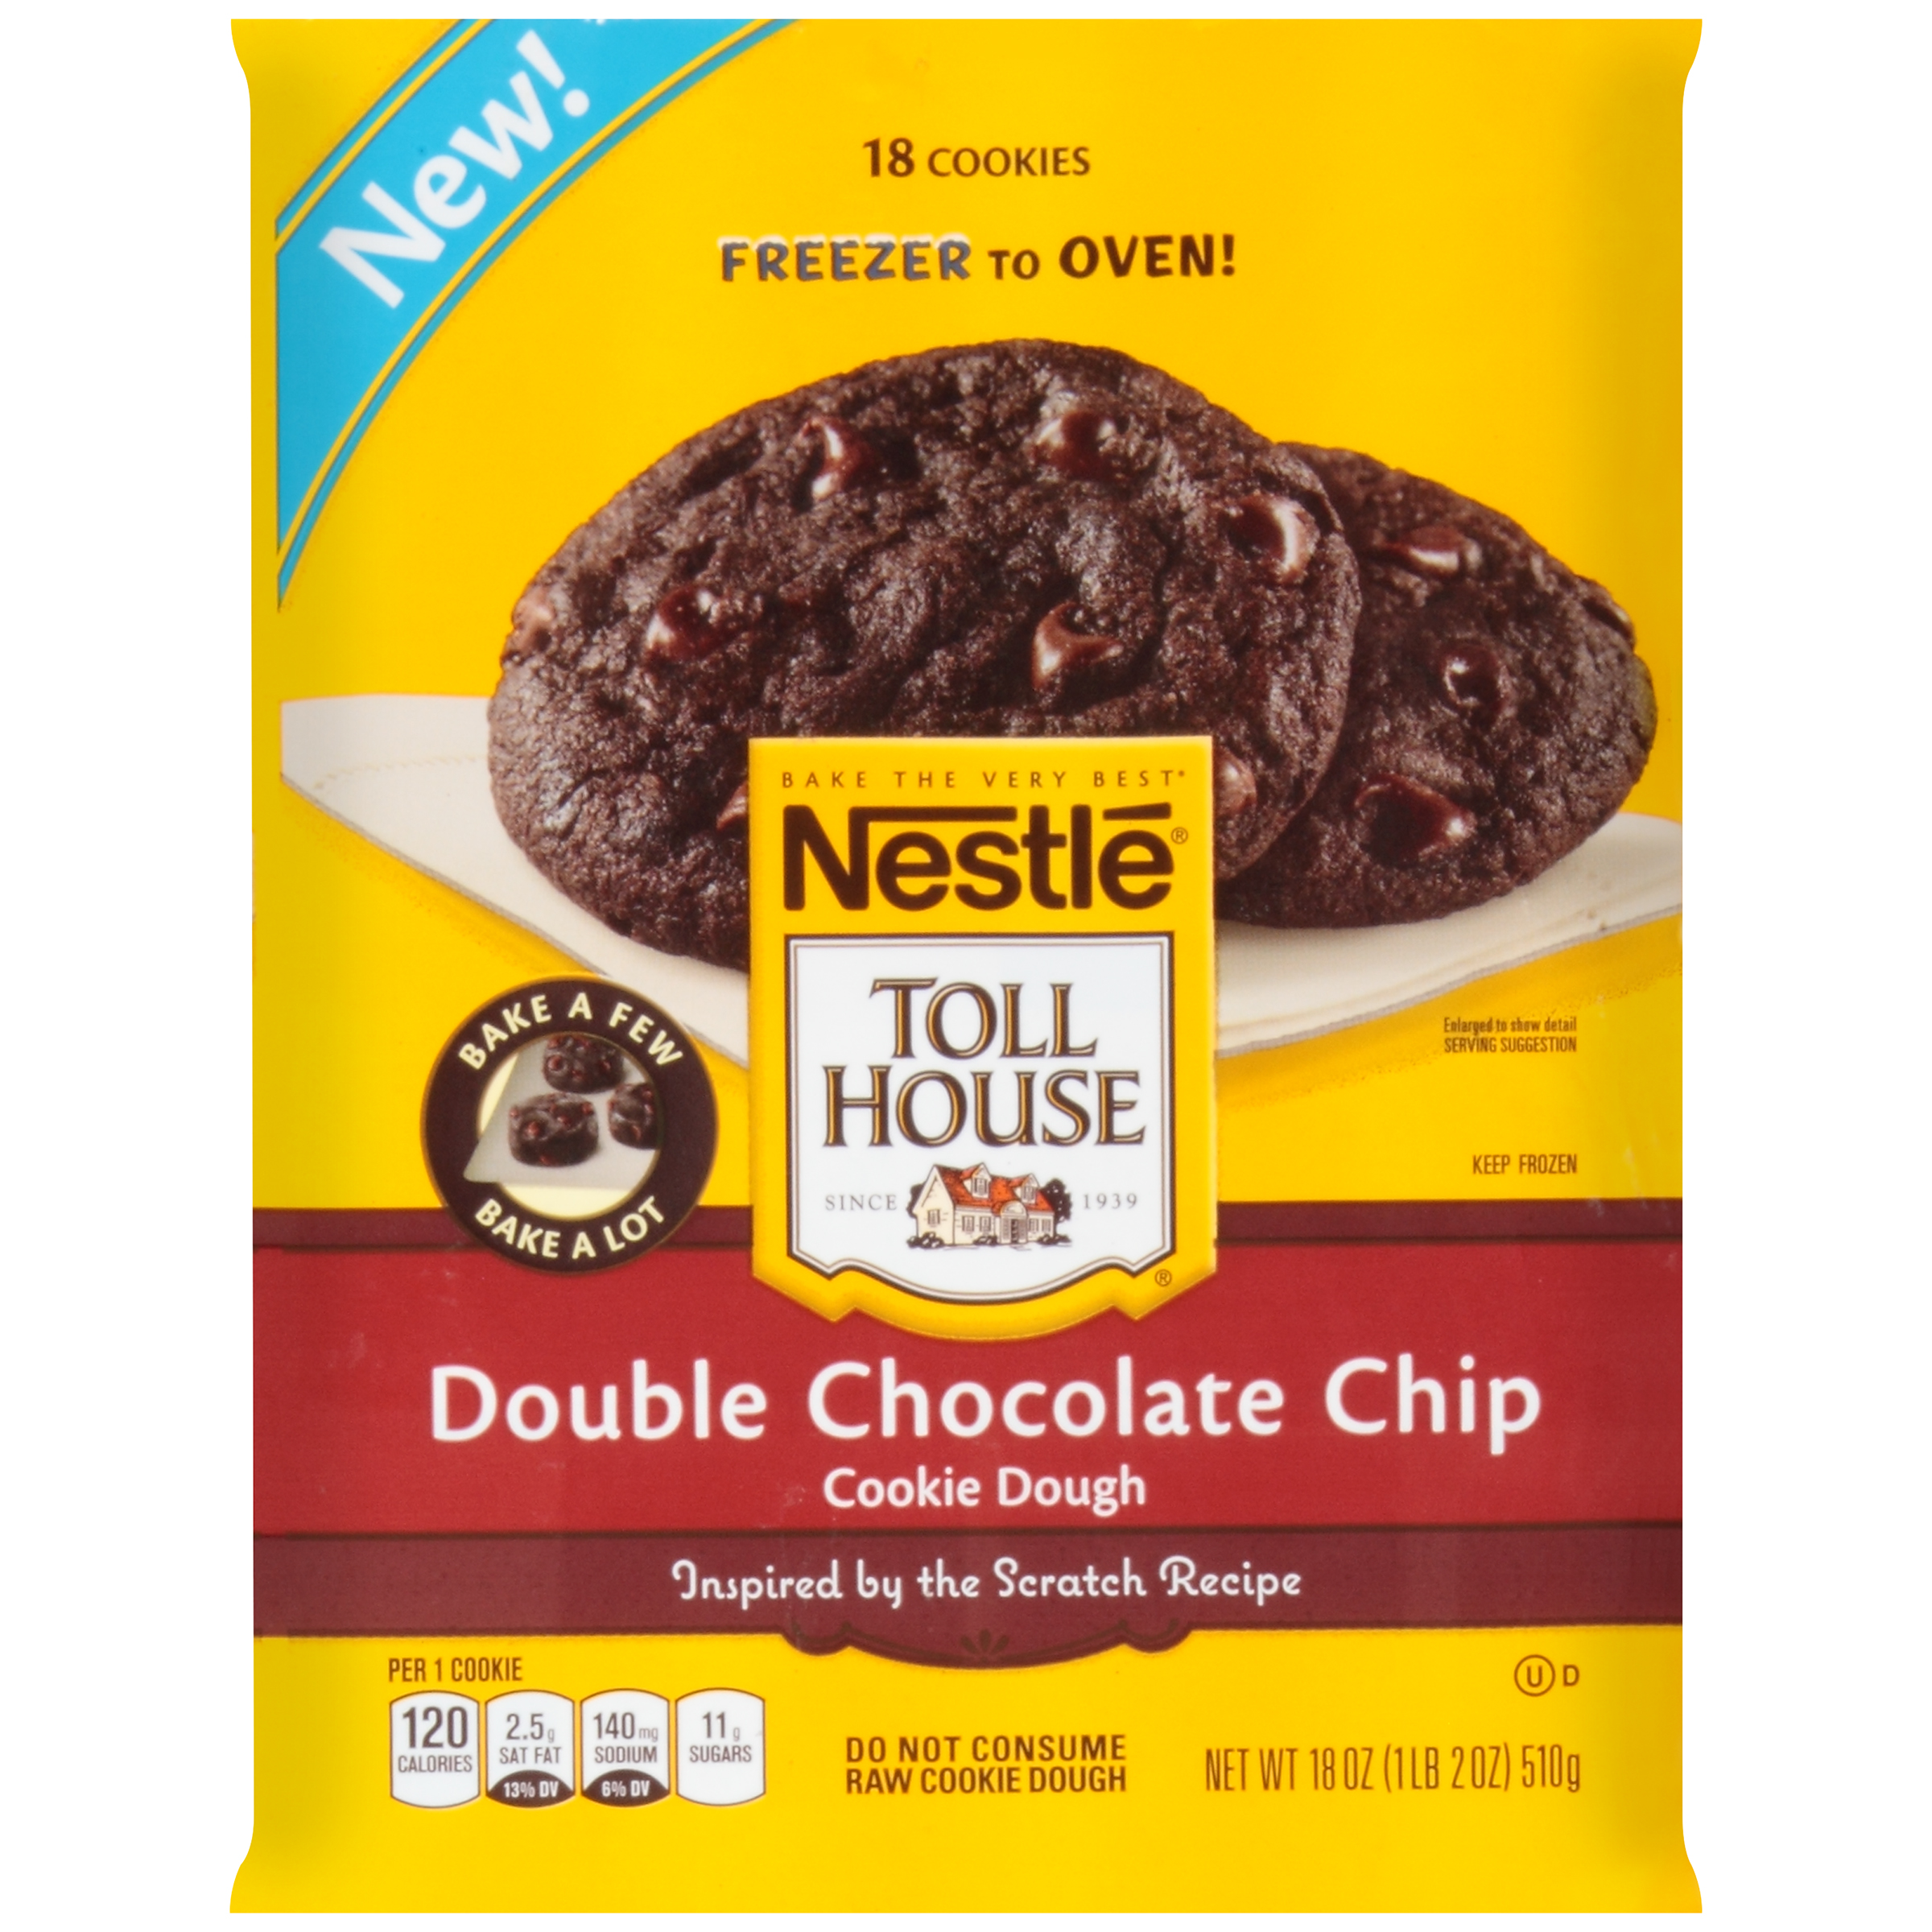 Nestle TOLL HOUSE Frozen Double Chocolate Chip Cookie ... Double Chocolate Chip Cookie Dough